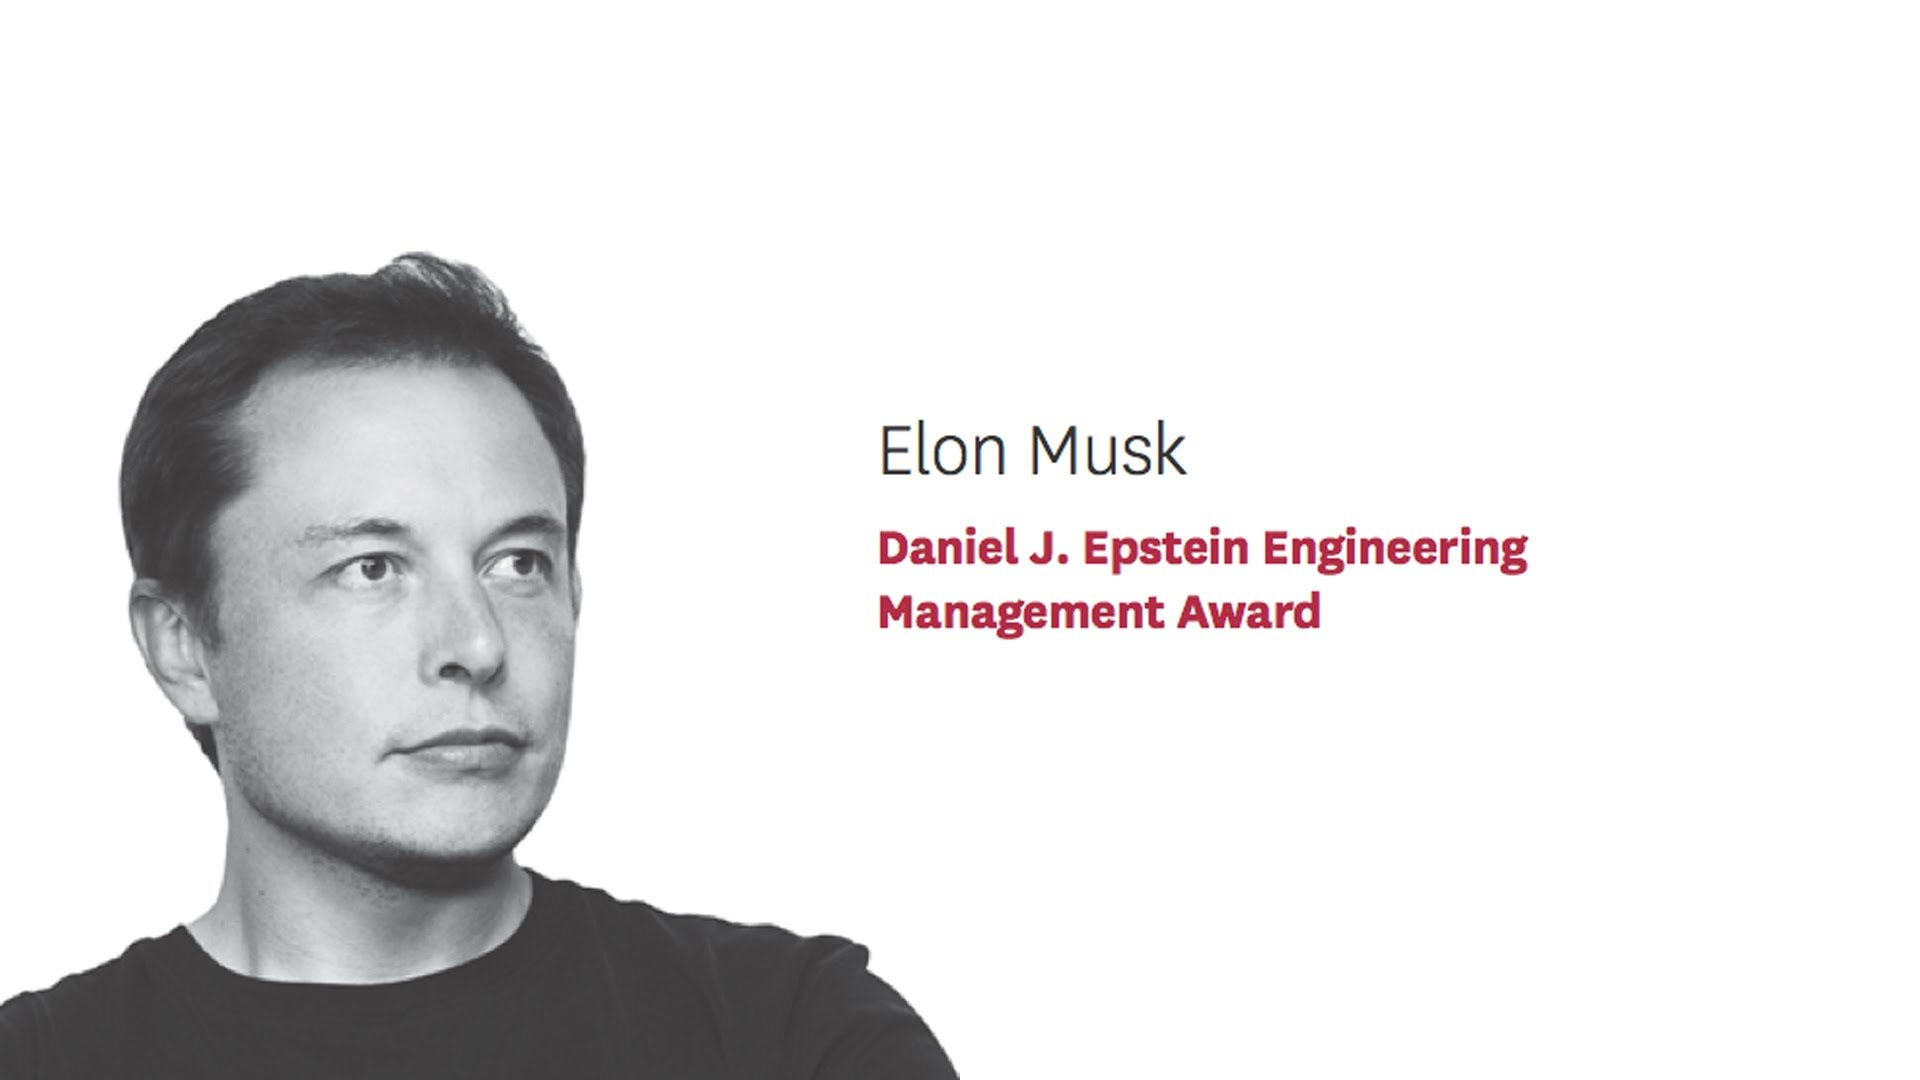 Download Elon Musk Wallpapers High Resolution and Quality Download 1920x1080